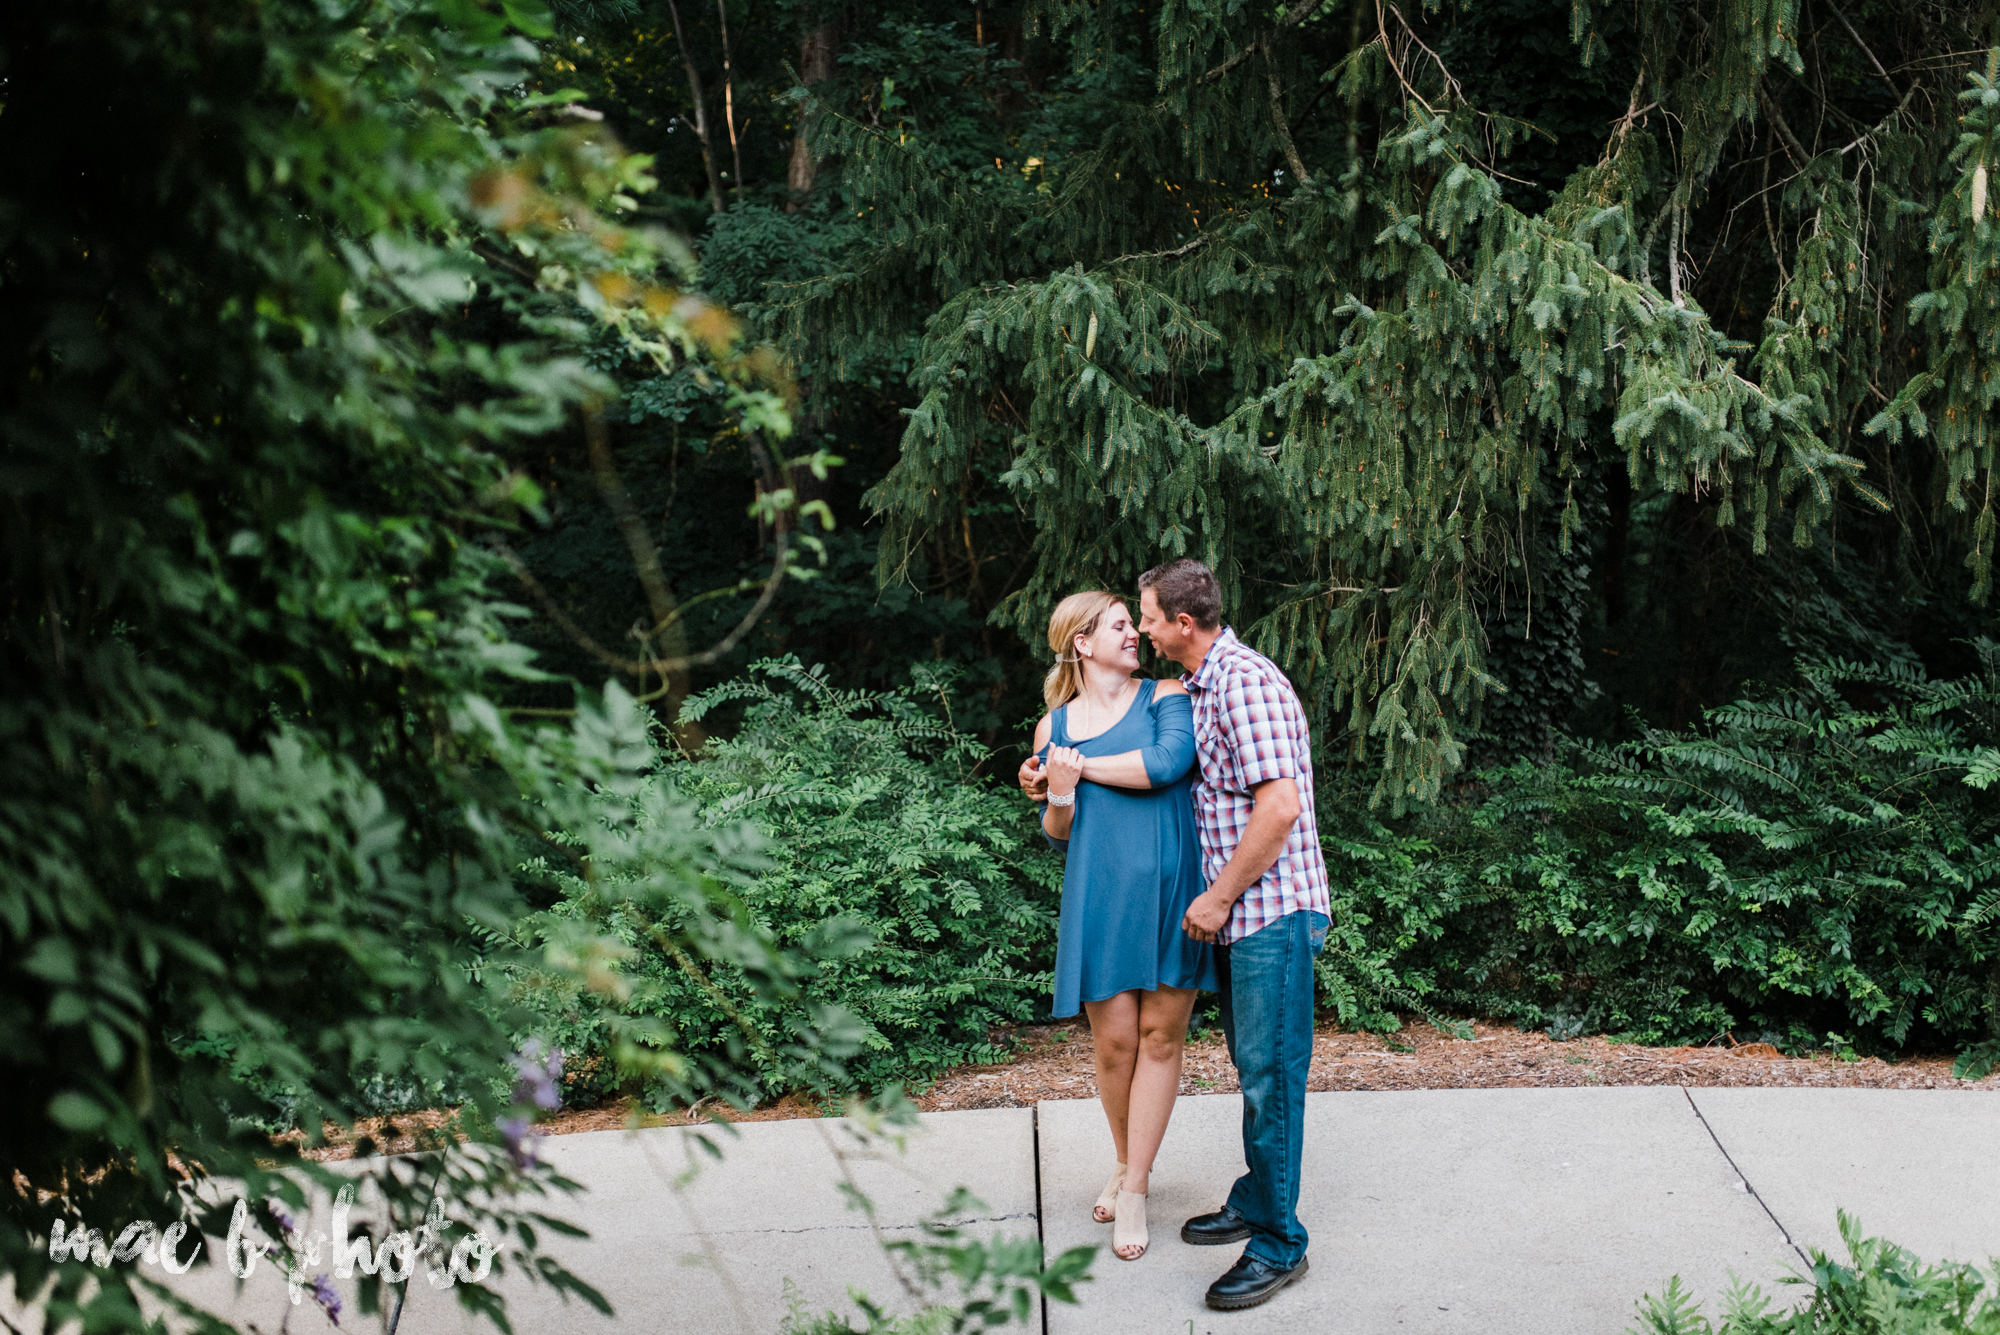 becca and rich's woodsy summer engagement session at ford nature center in mill creek park in youngstown ohio photographed by cleveland wedding photographer mae b photo-32.jpg